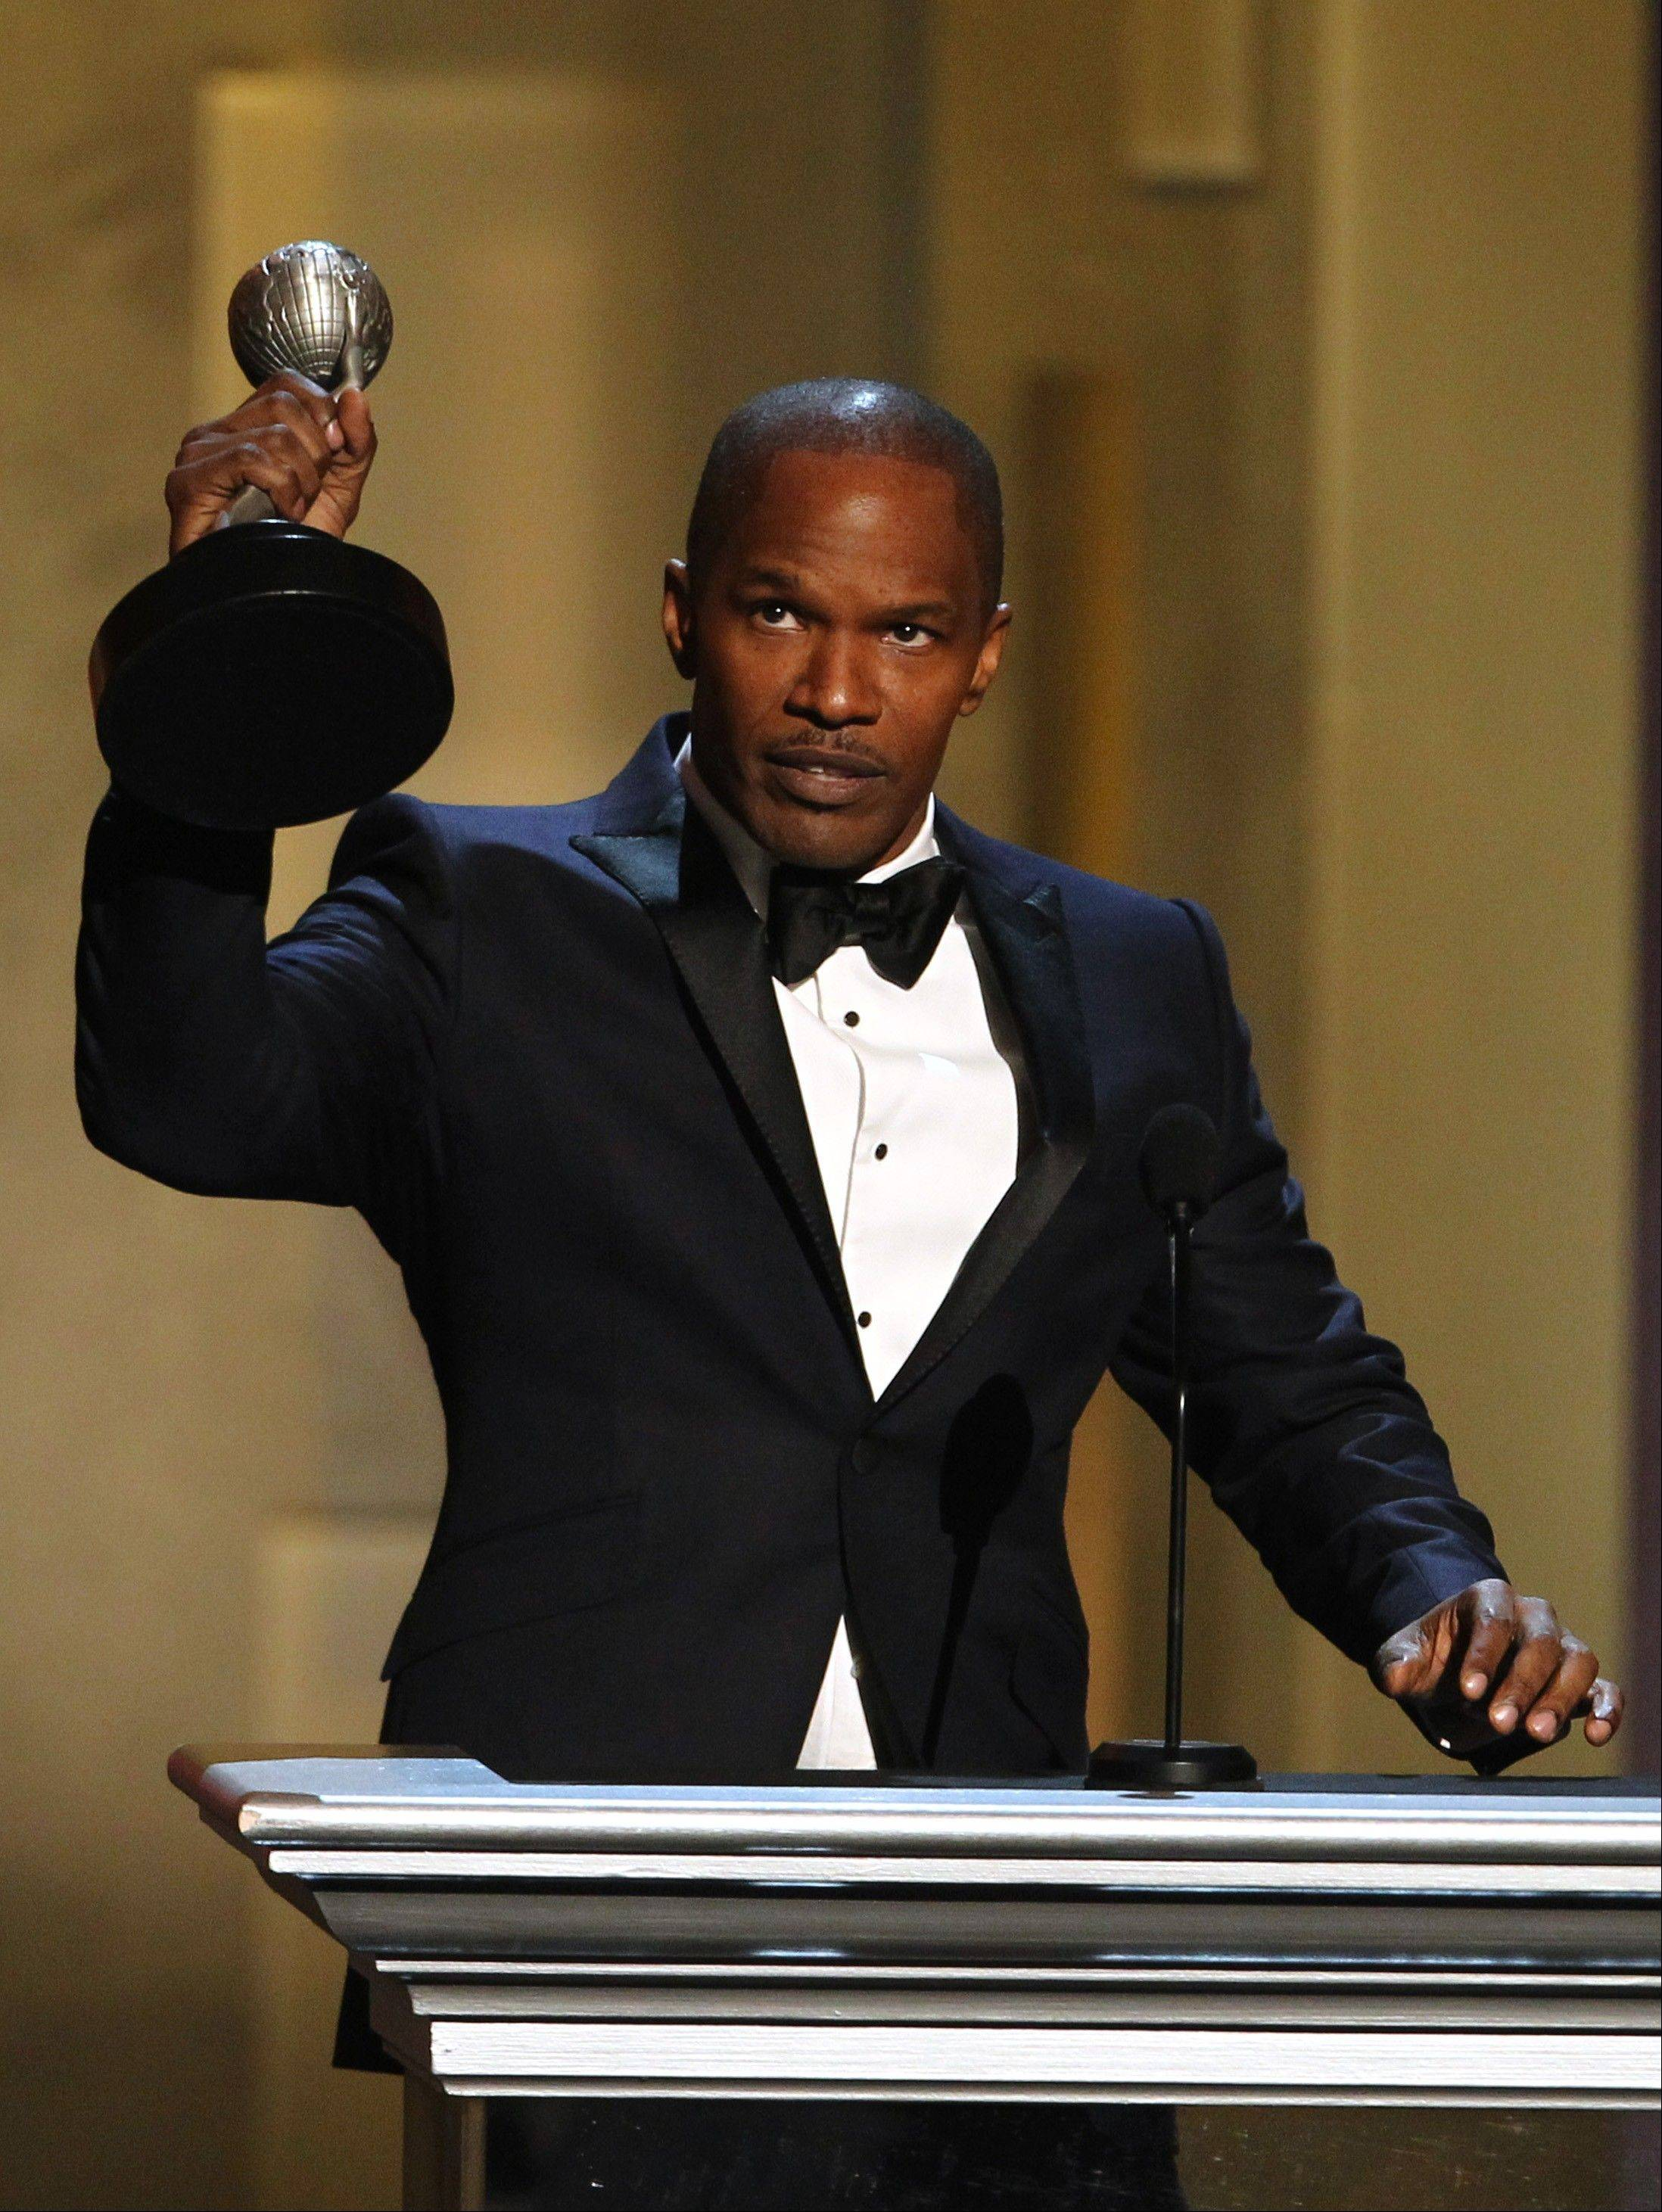 Jamie Foxx accepts the entertainer of the year award at the 44th Annual NAACP Image Awards at the Shrine Auditorium in Los Angeles on Friday, Feb. 1, 2013.